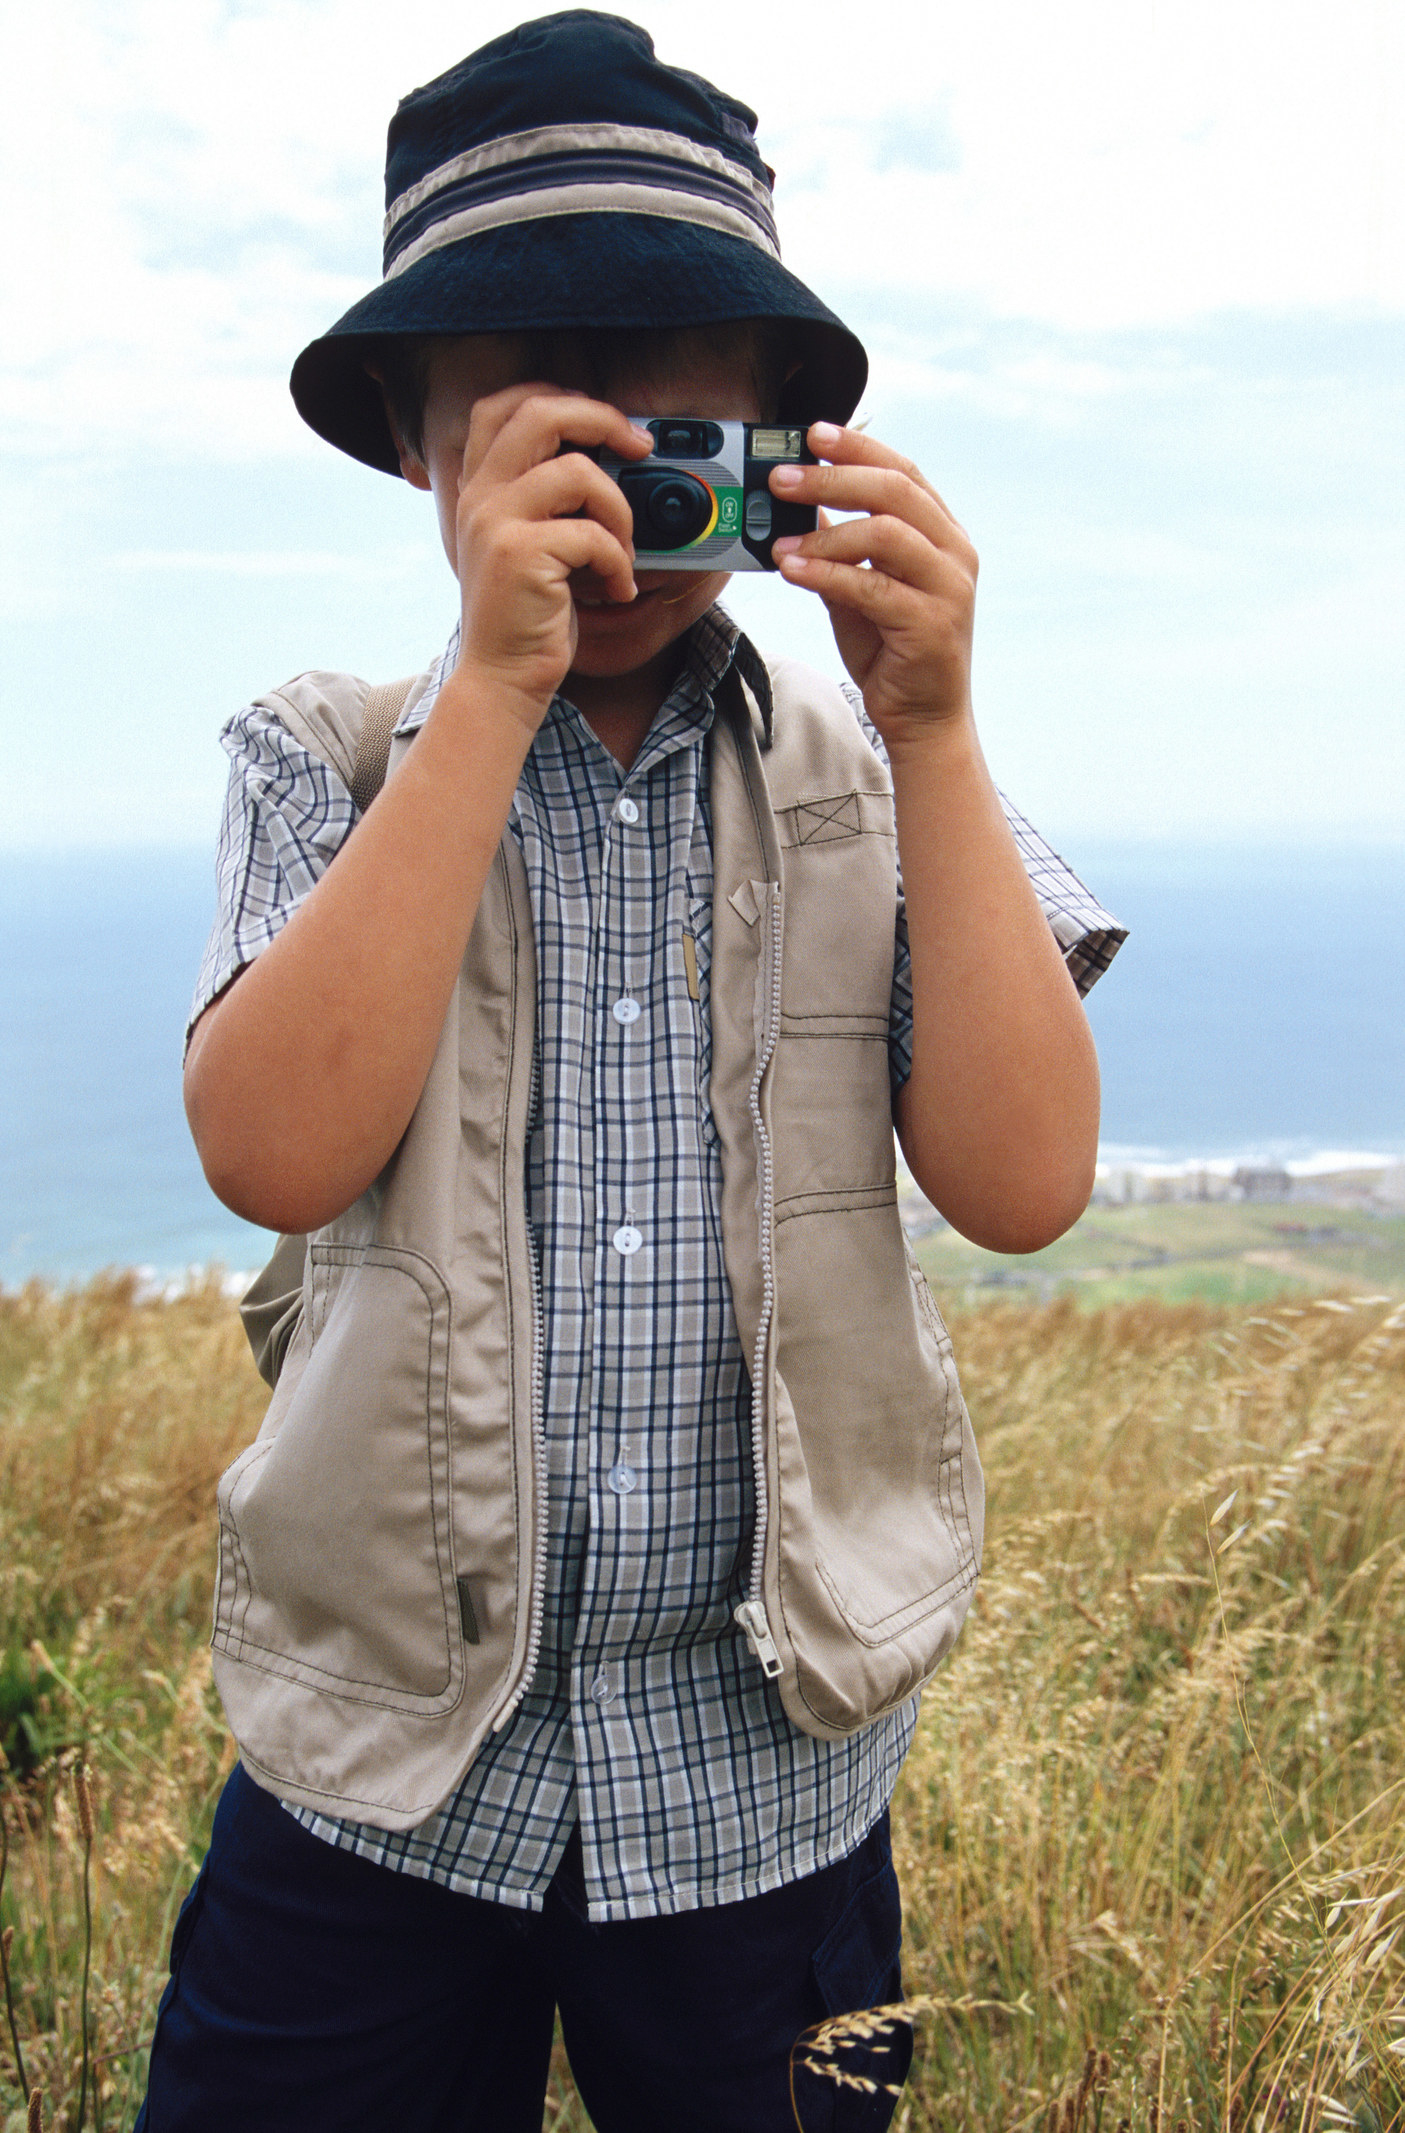 A young boy holding a disposable camera to his face